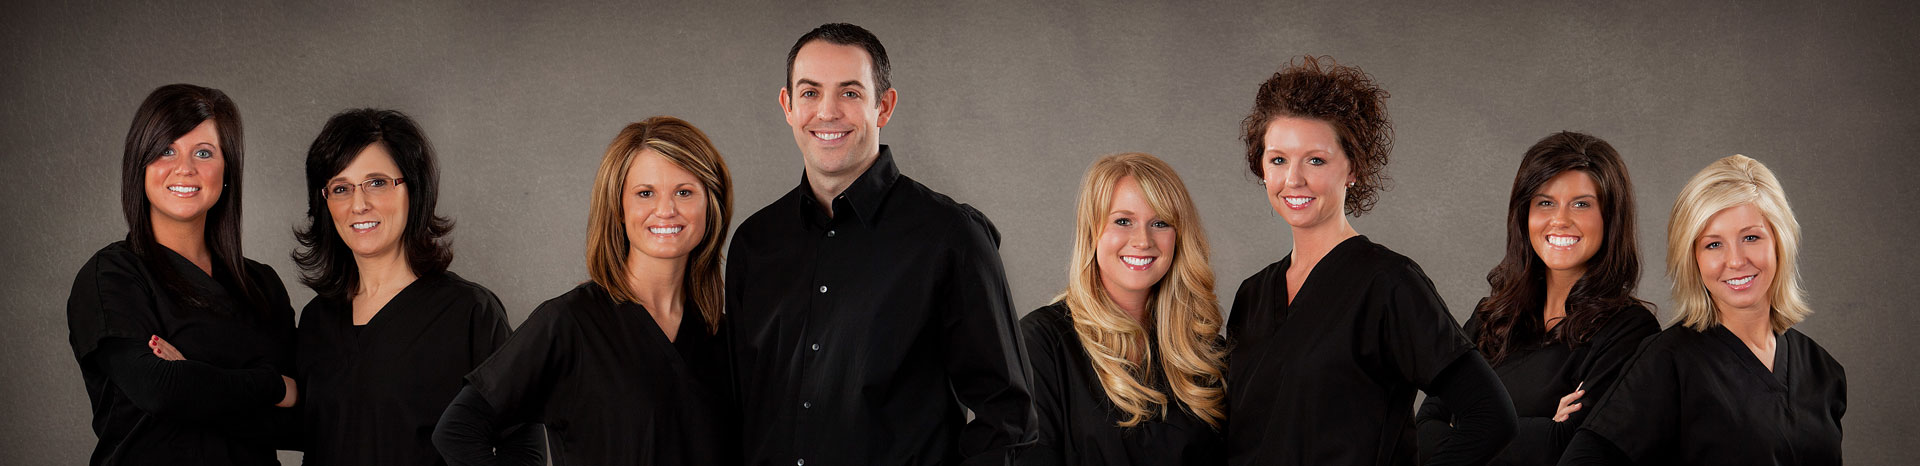 Owensboro Dental Team